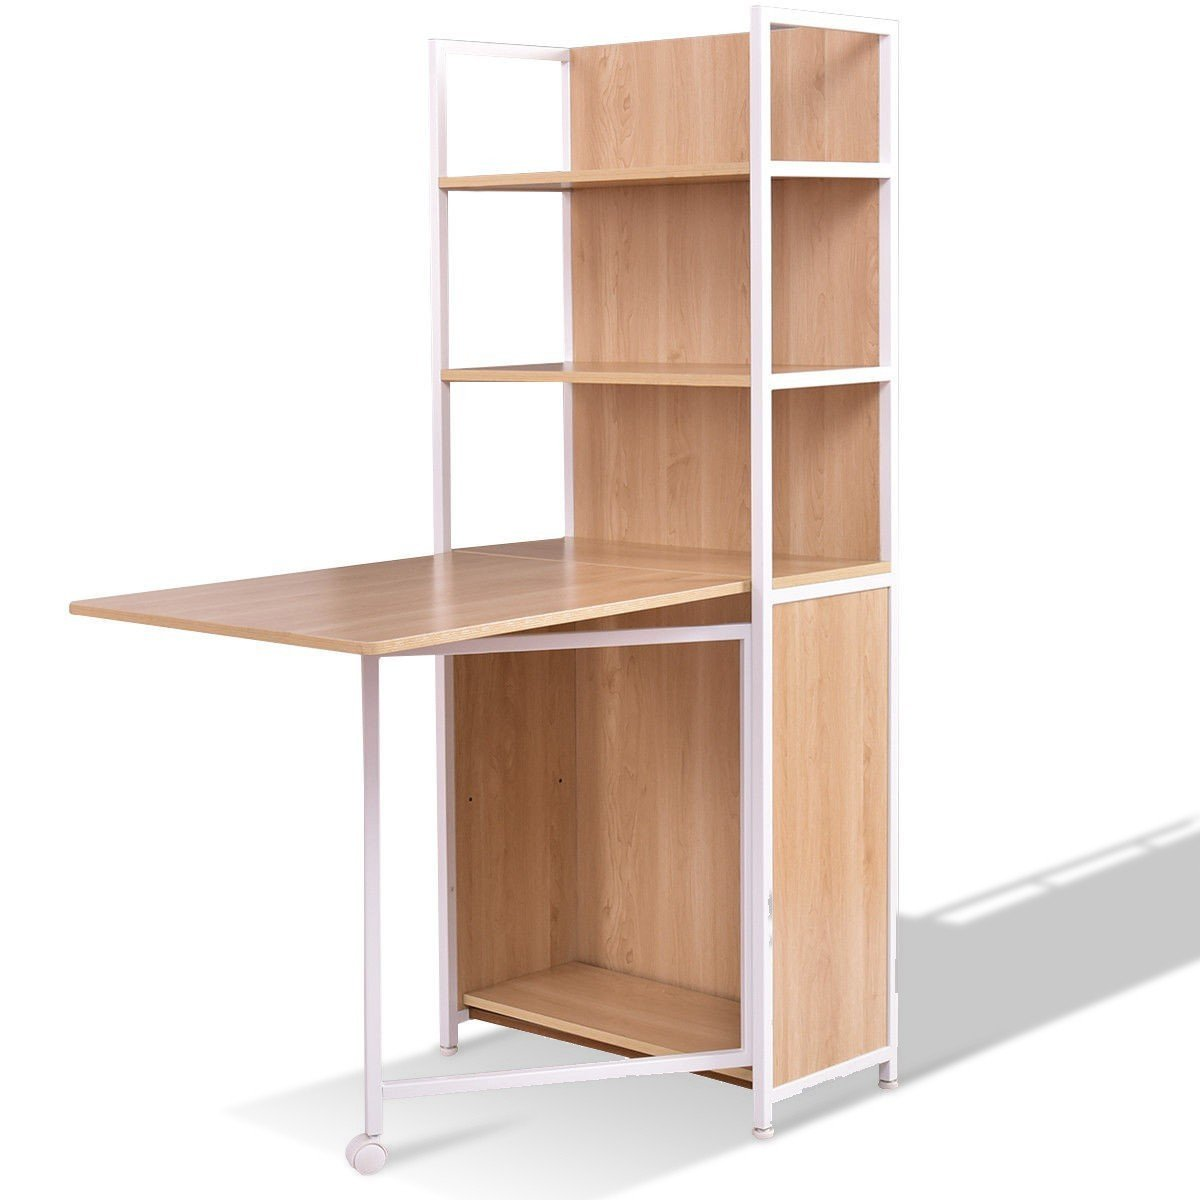 2-in-1 Folding Fold Out Convertible Desk with Cabinet & Bookshelf